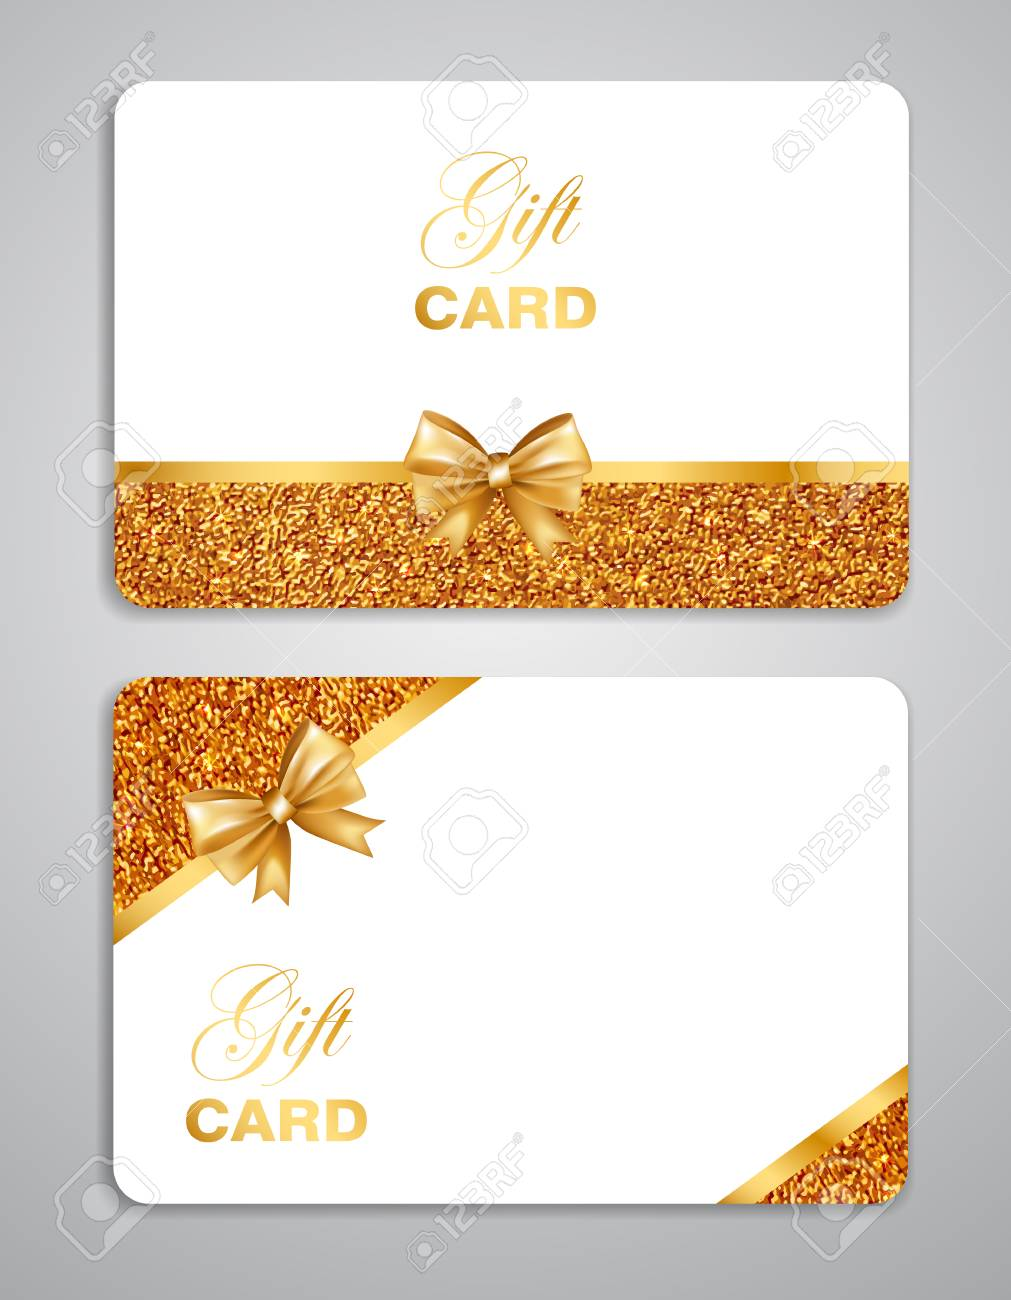 Gift Card With Gold Bow And Glitter Border Isolated On Gray